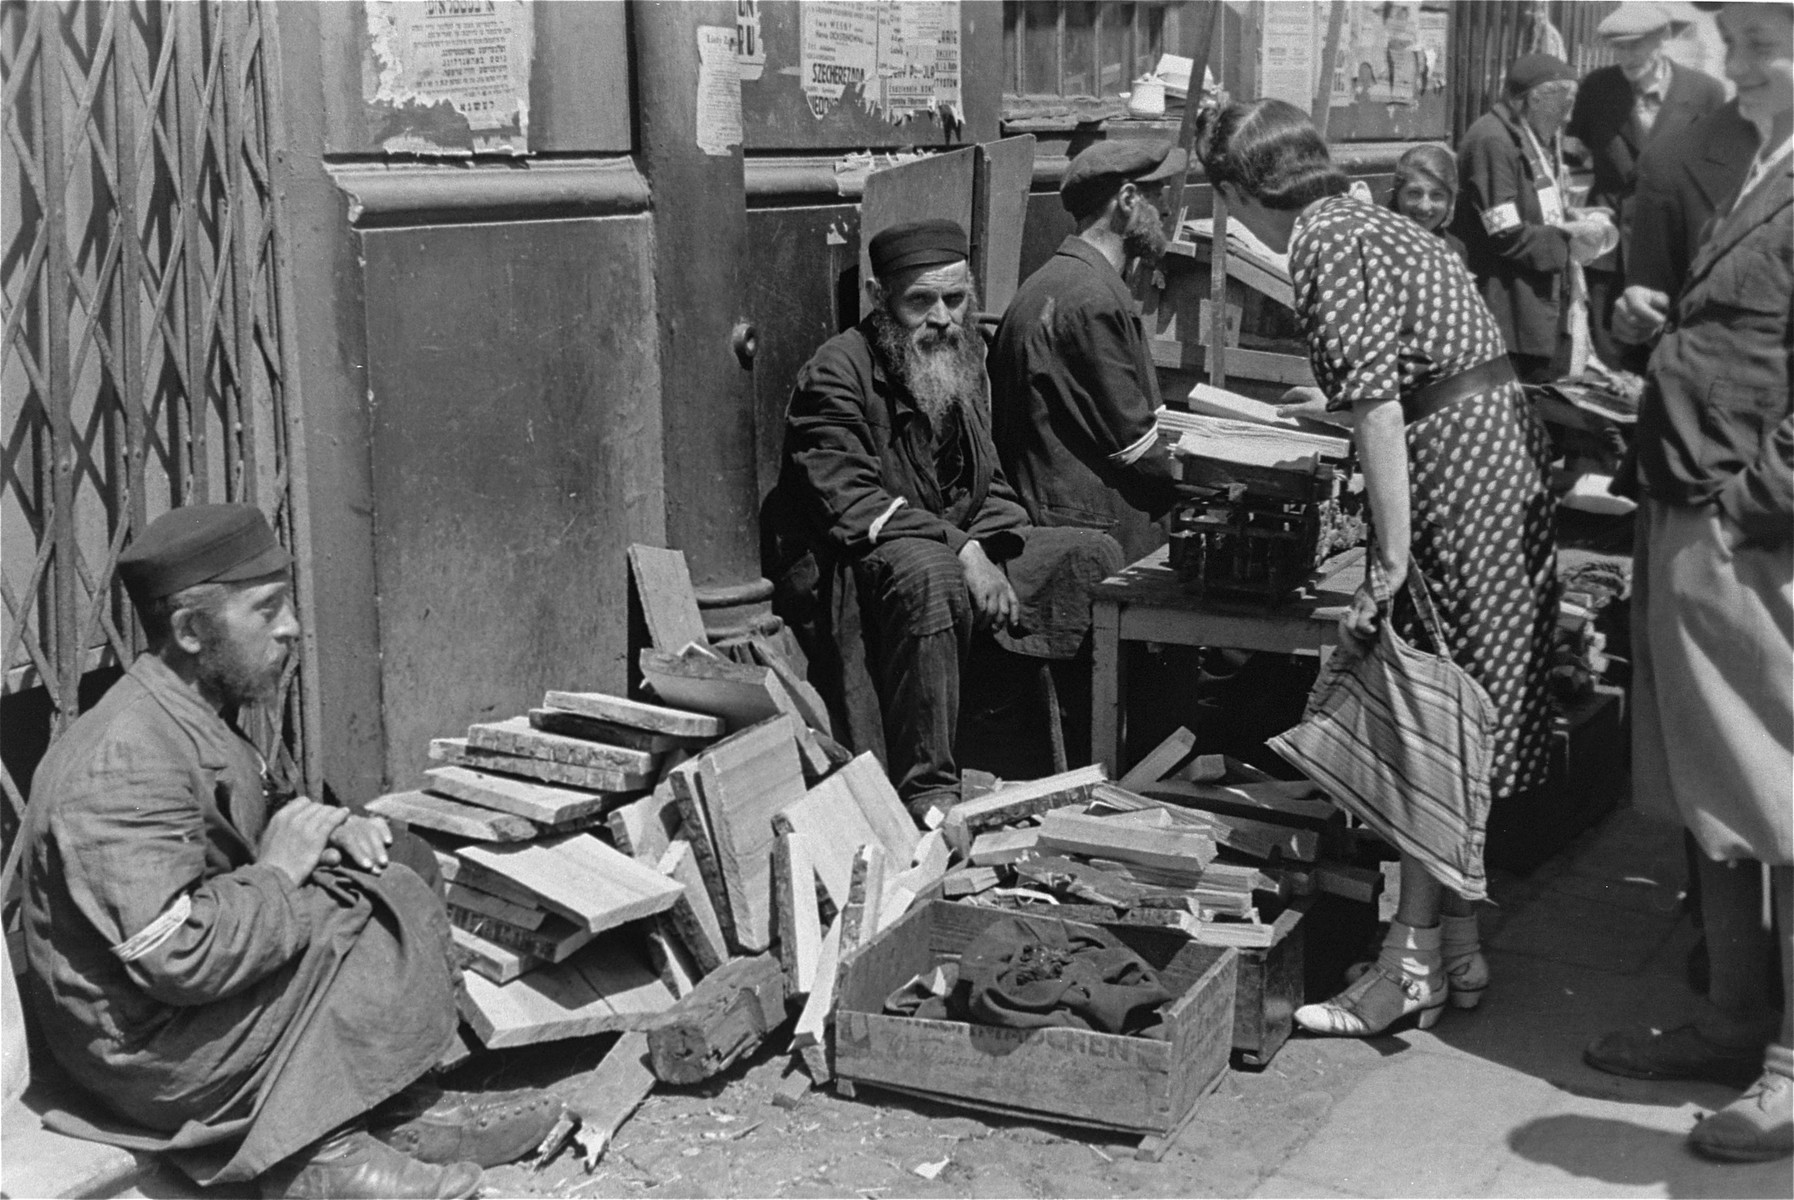 A woman purchases kindling from a street vendor in the Warsaw ghetto.